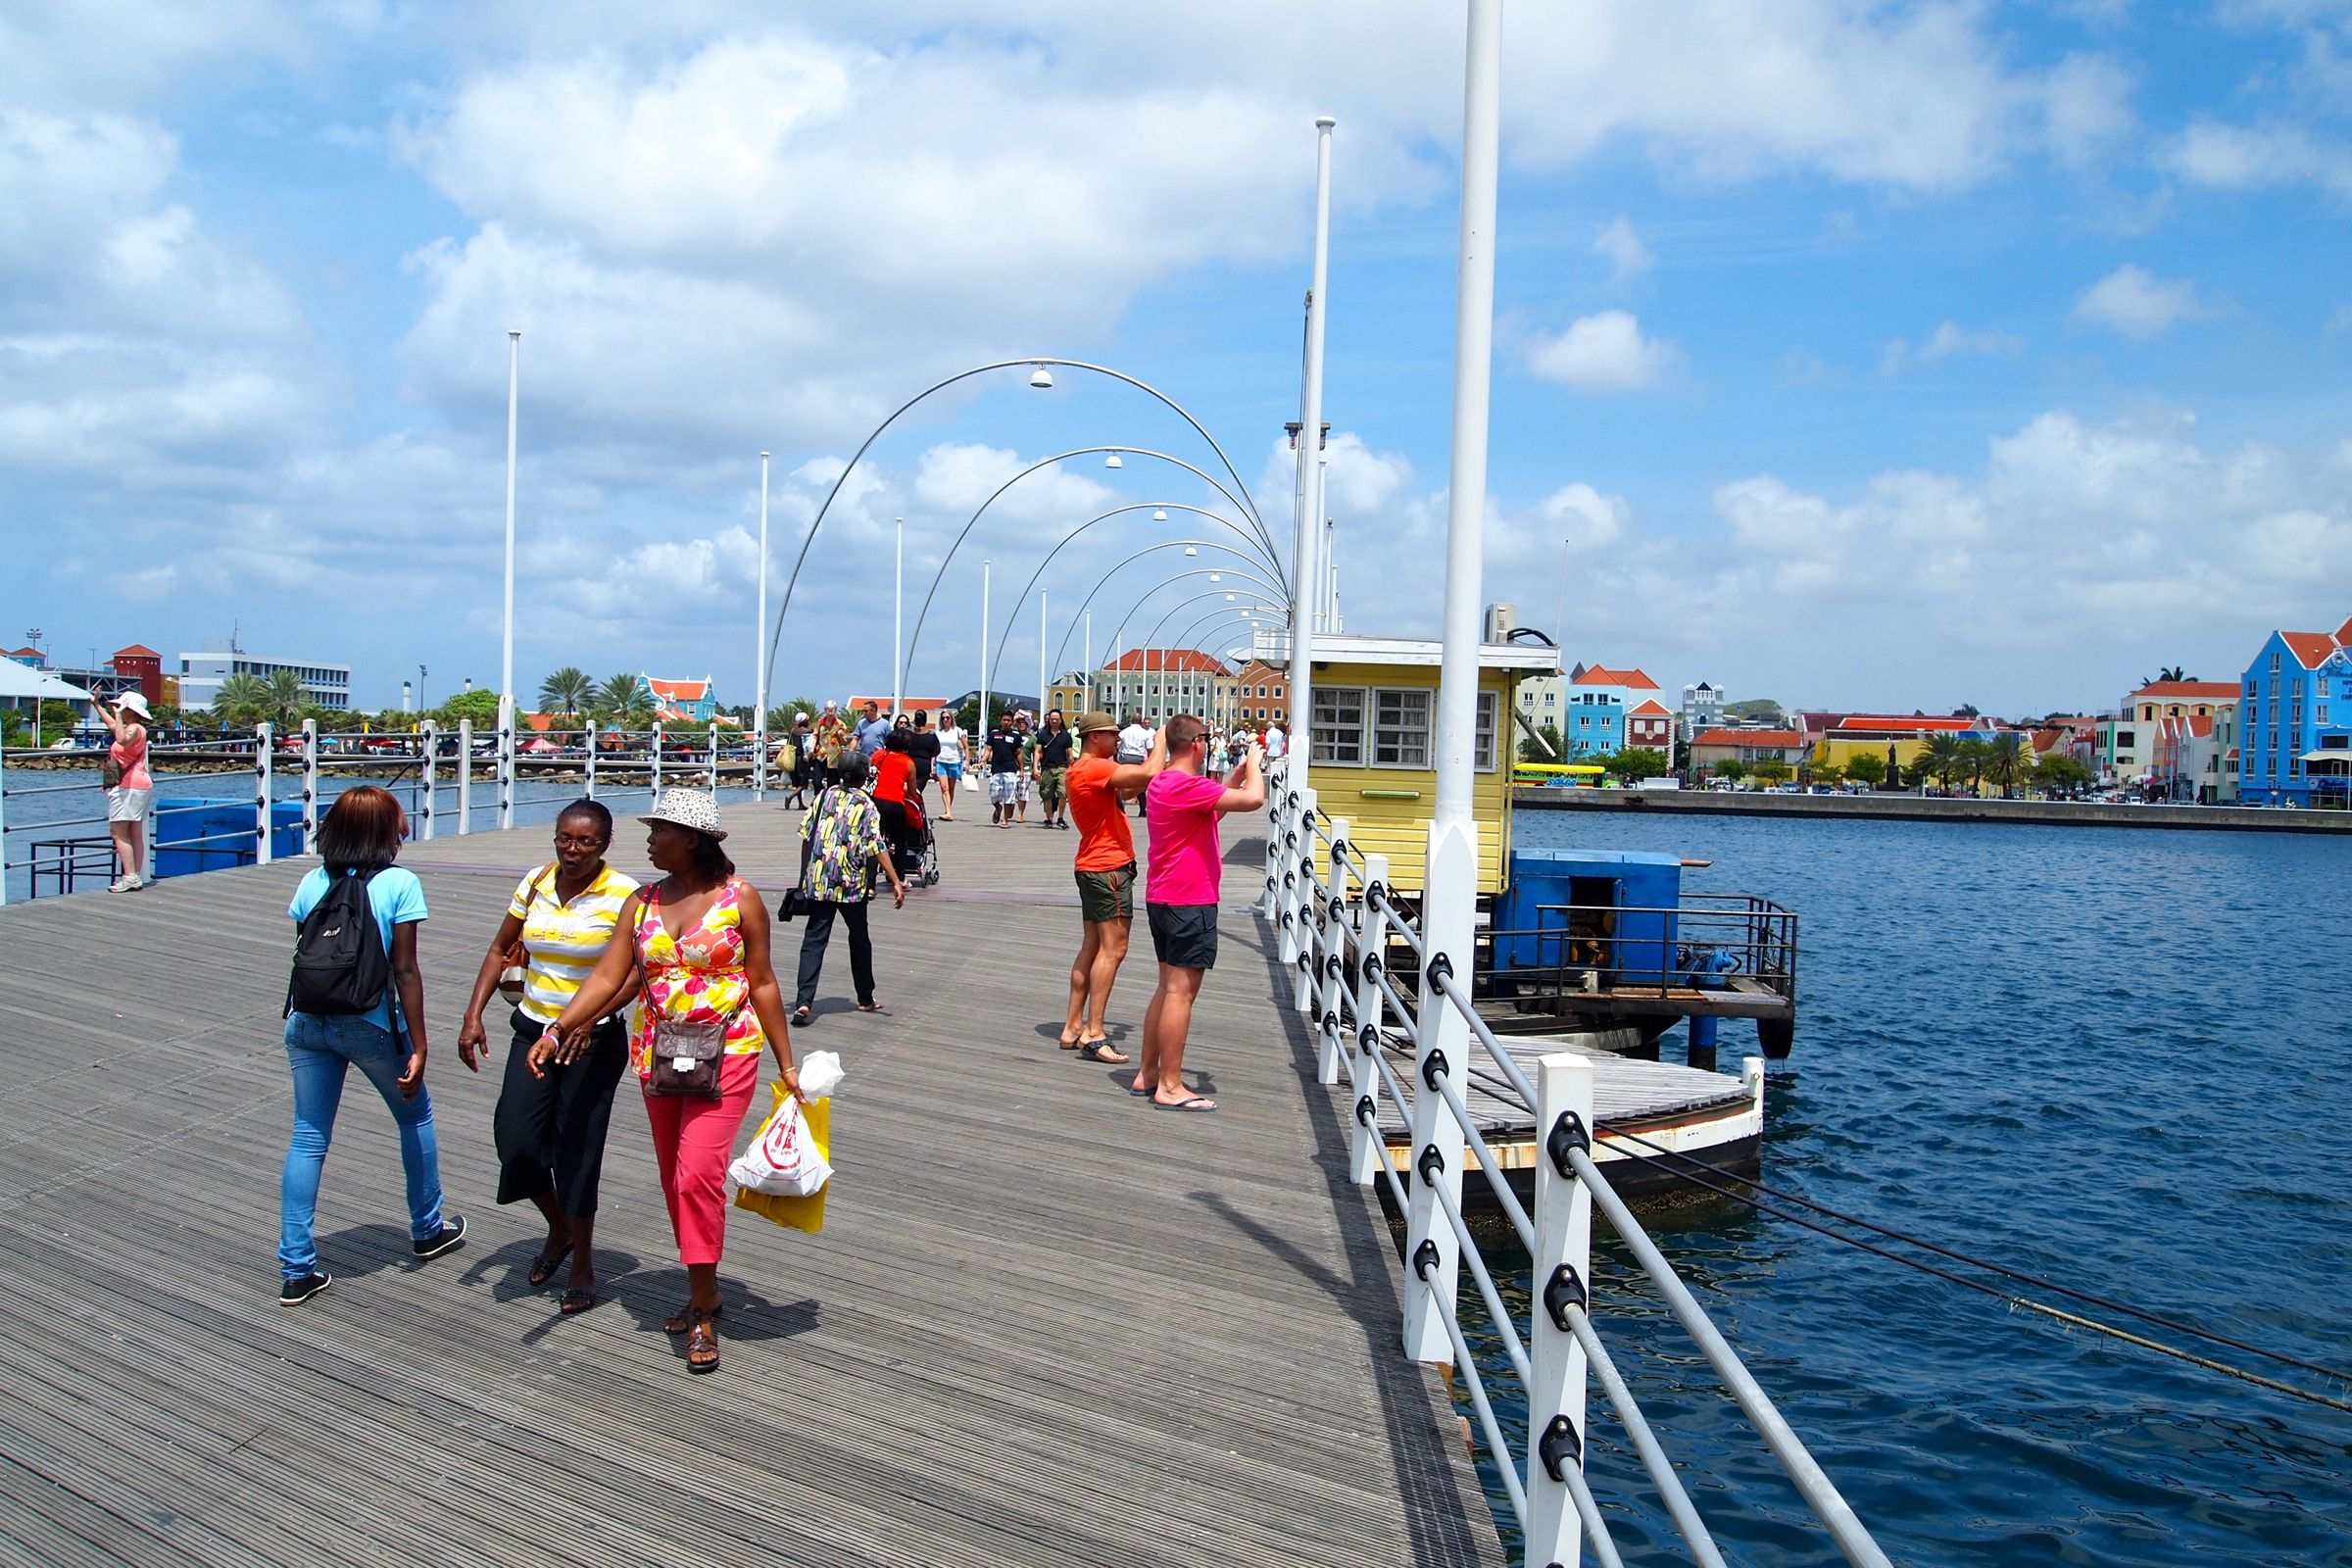 Queen Emma (Floating Bridge), Curacao | Credit: SBPR